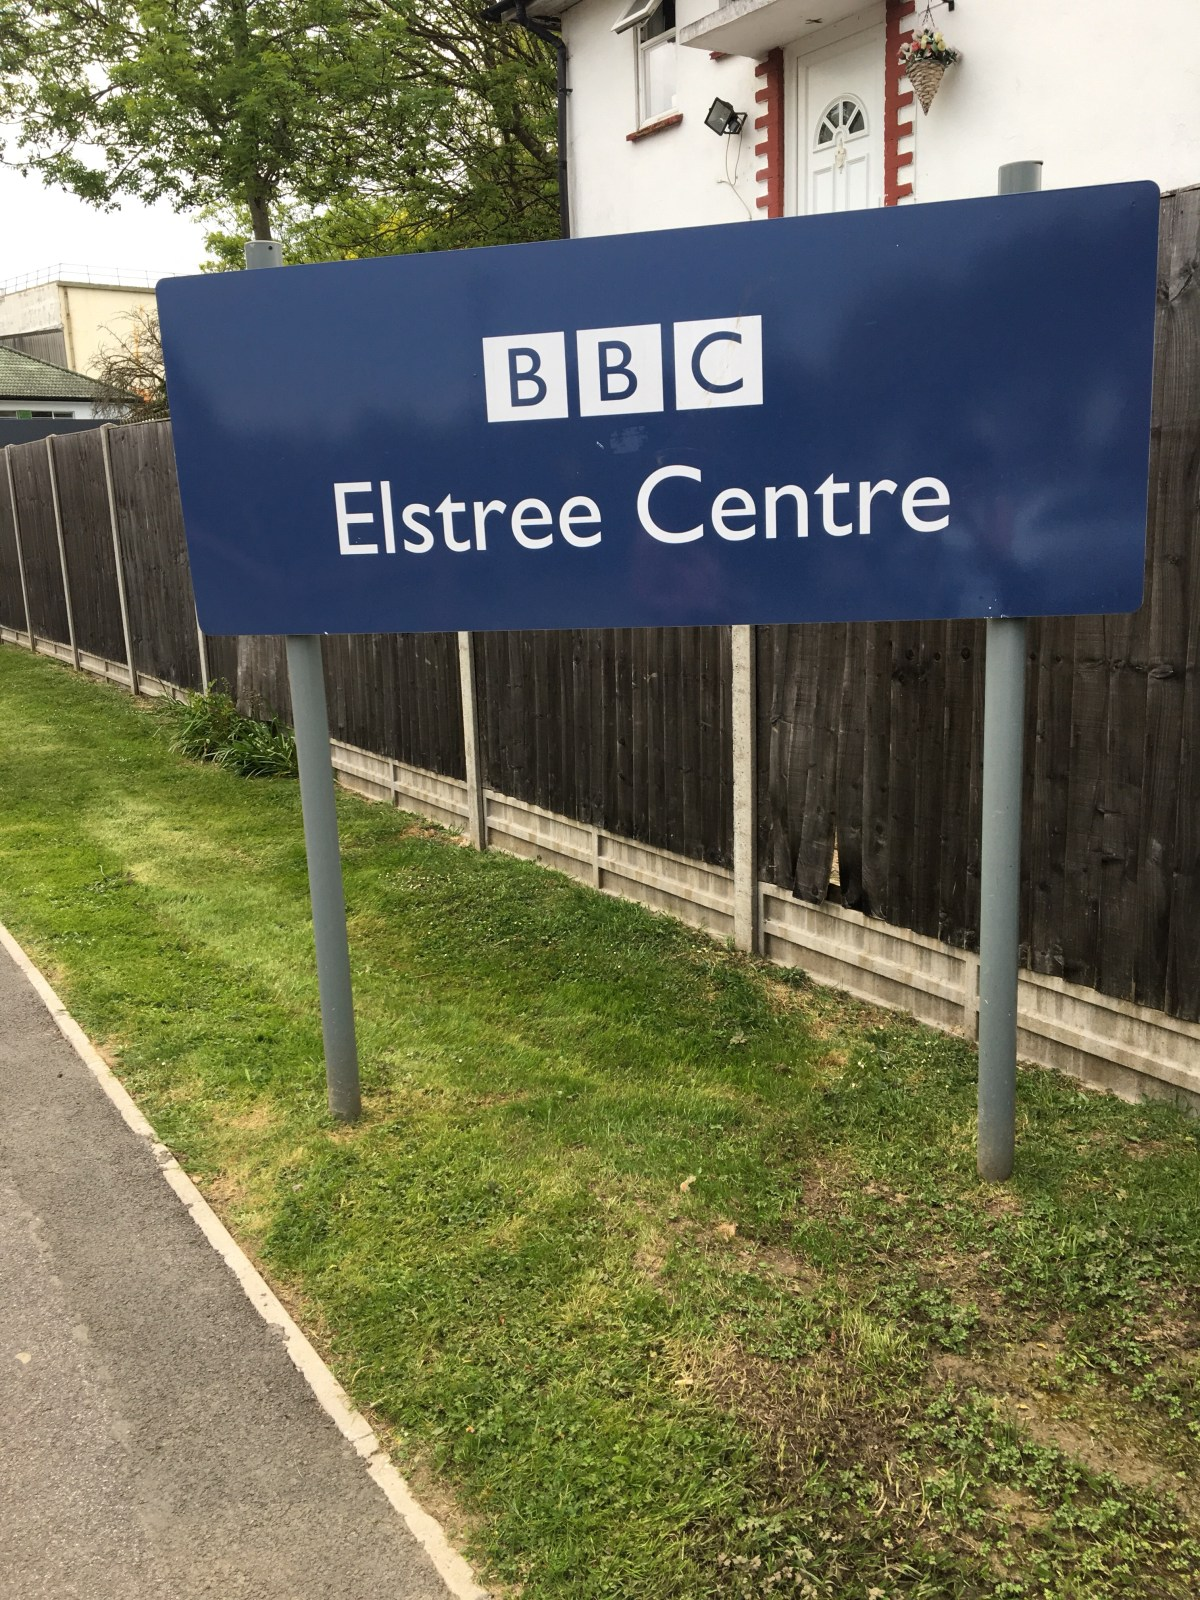 Our Road trip = BBC Elstree Studios with Kate